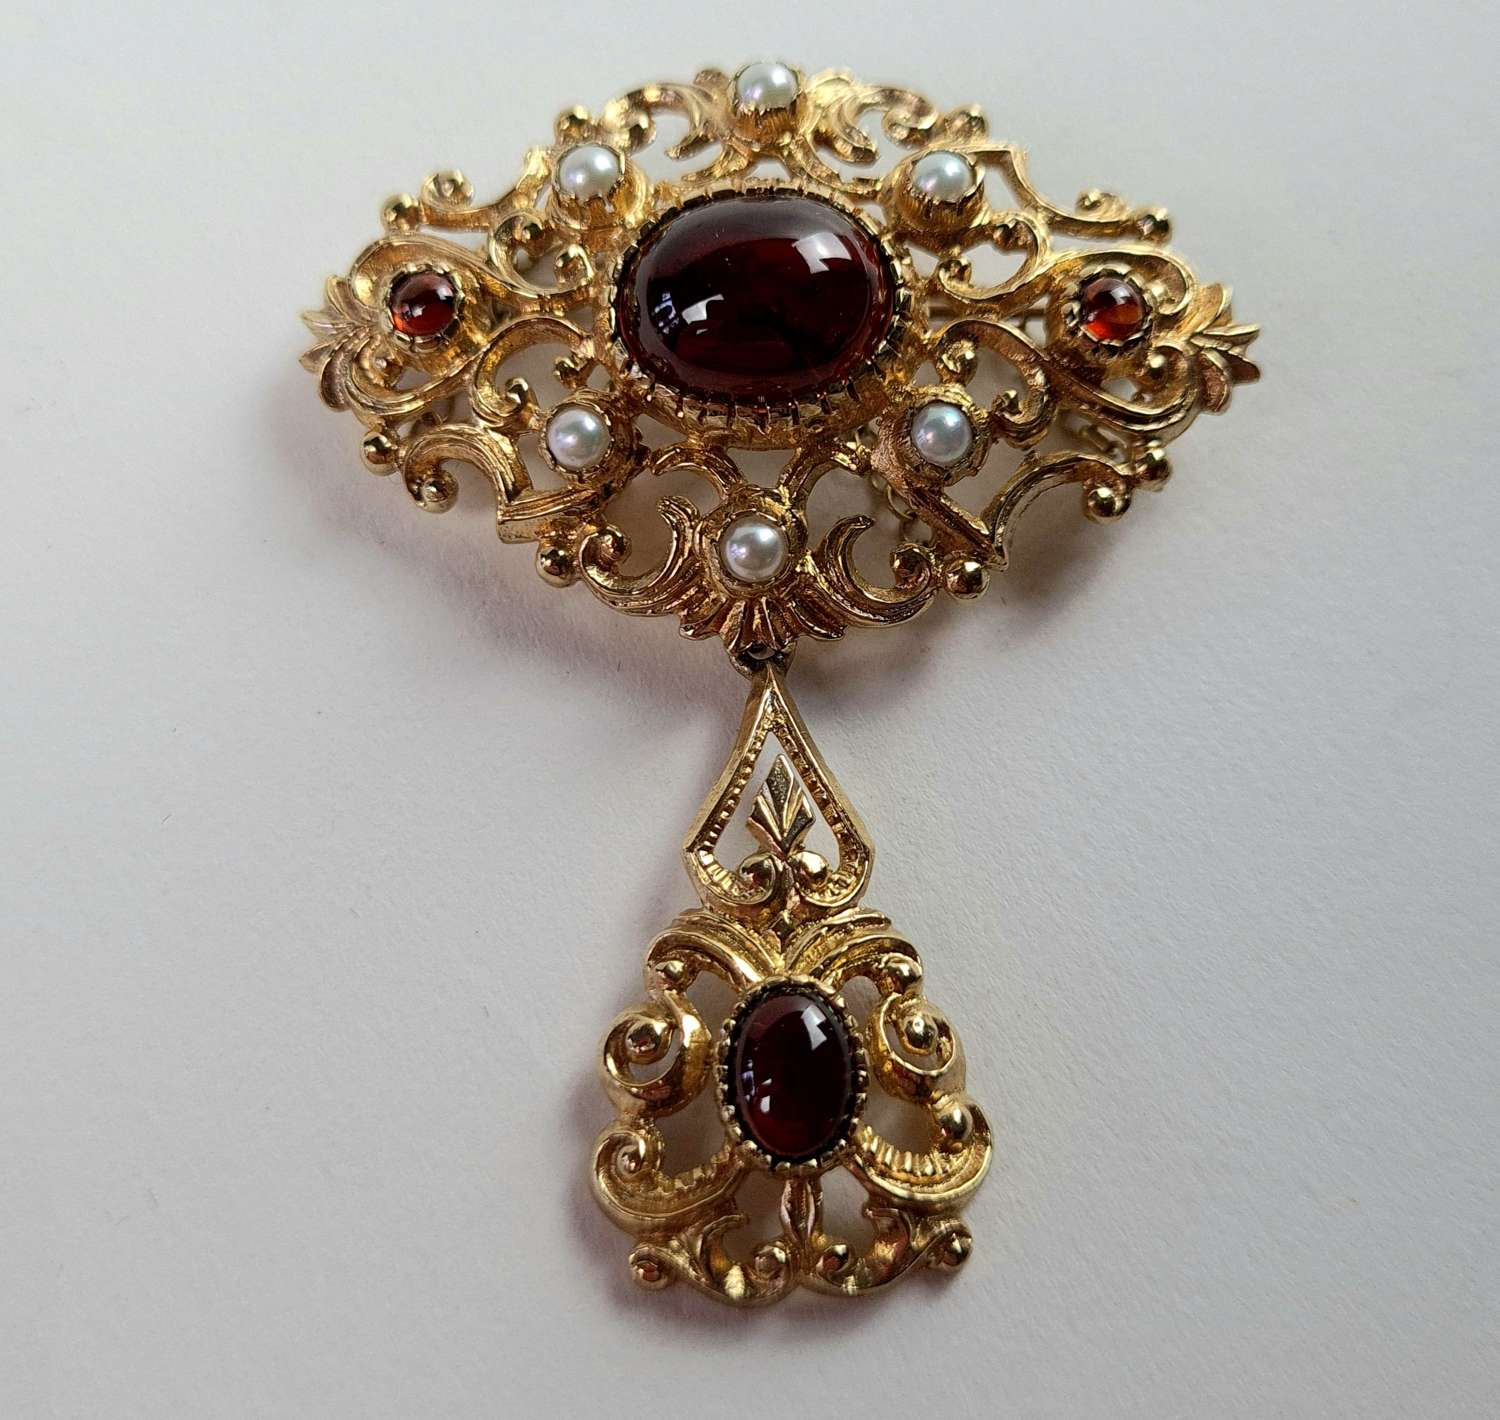 Reproduction Victorian Brooch